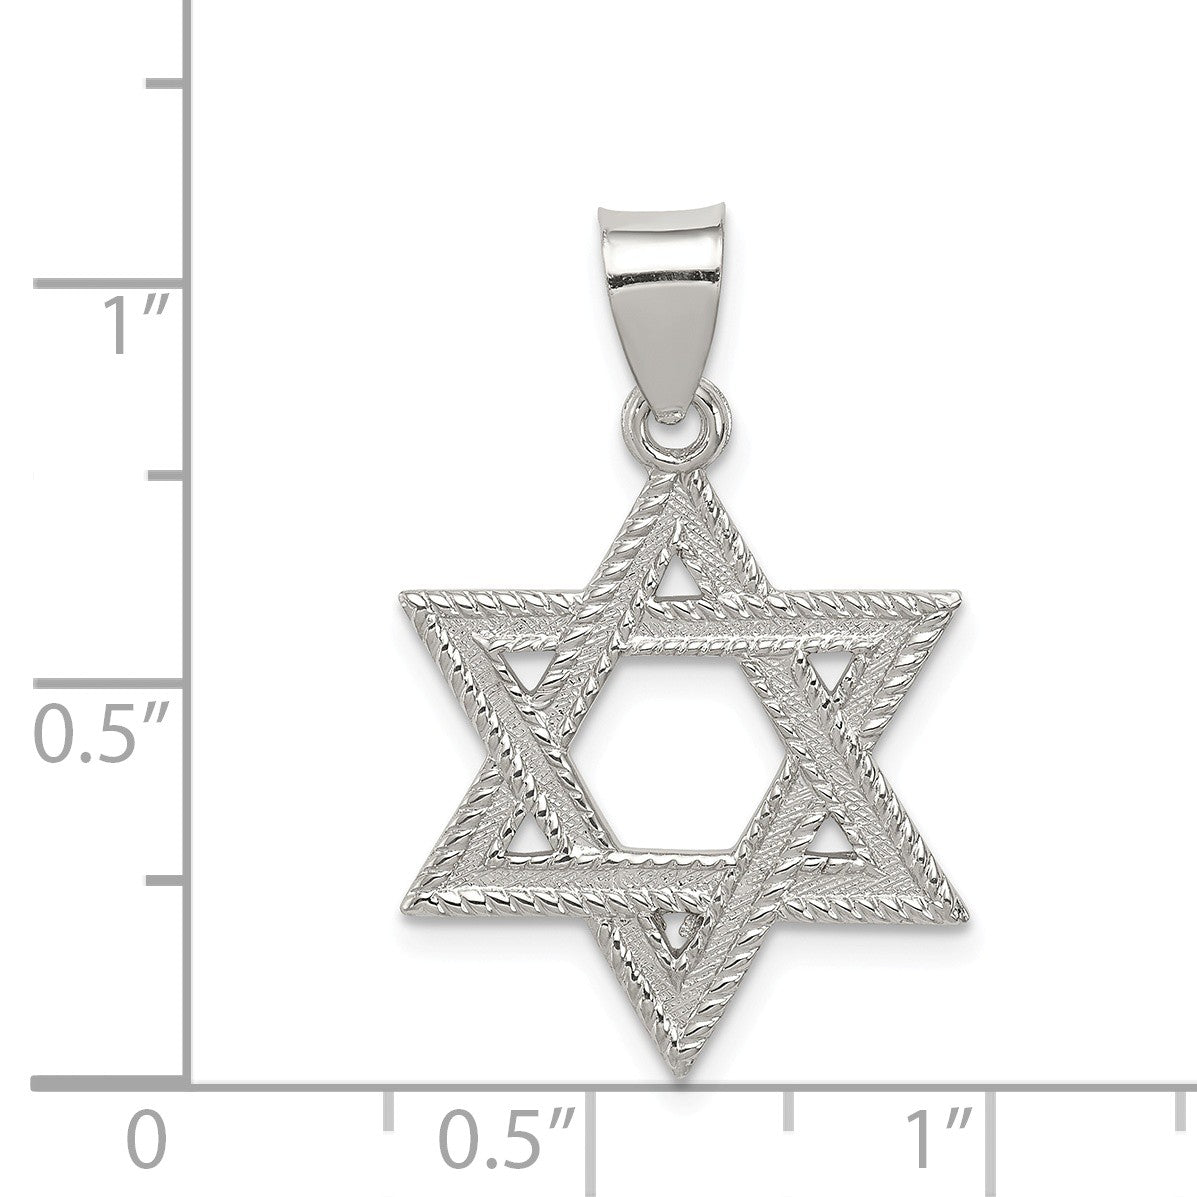 Alternate view of the Sterling Silver Satin Textured Star of David Charm or Pendant by The Black Bow Jewelry Co.